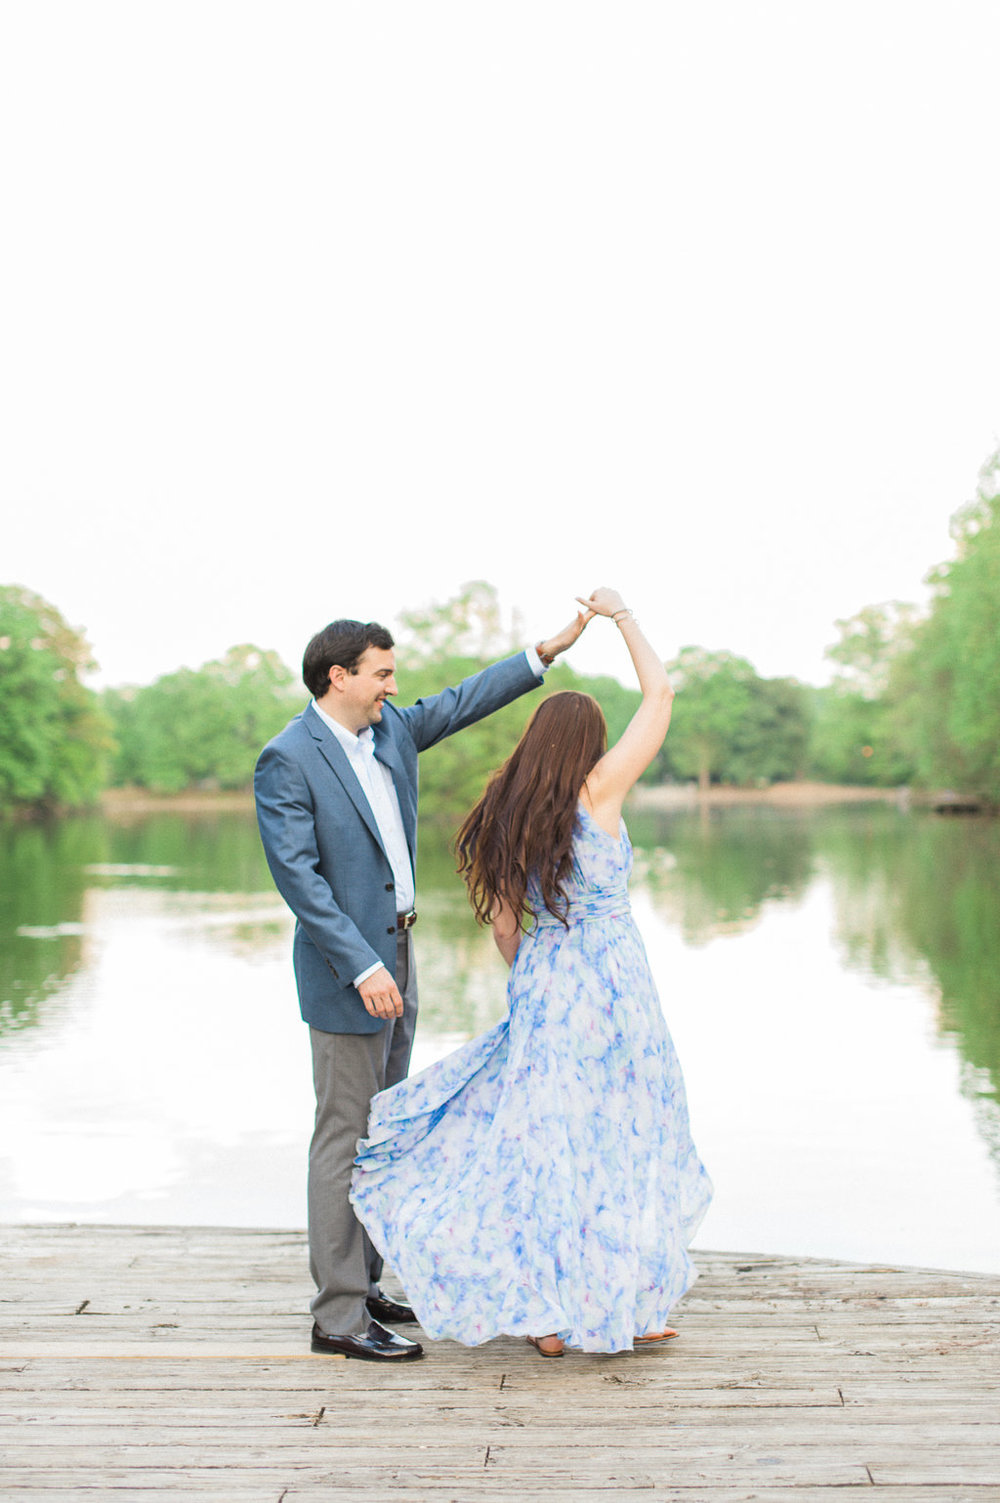 Piedmont-Park-Engagement-atlanta-wedding-photographer-hannah-forsberg-8.jpg